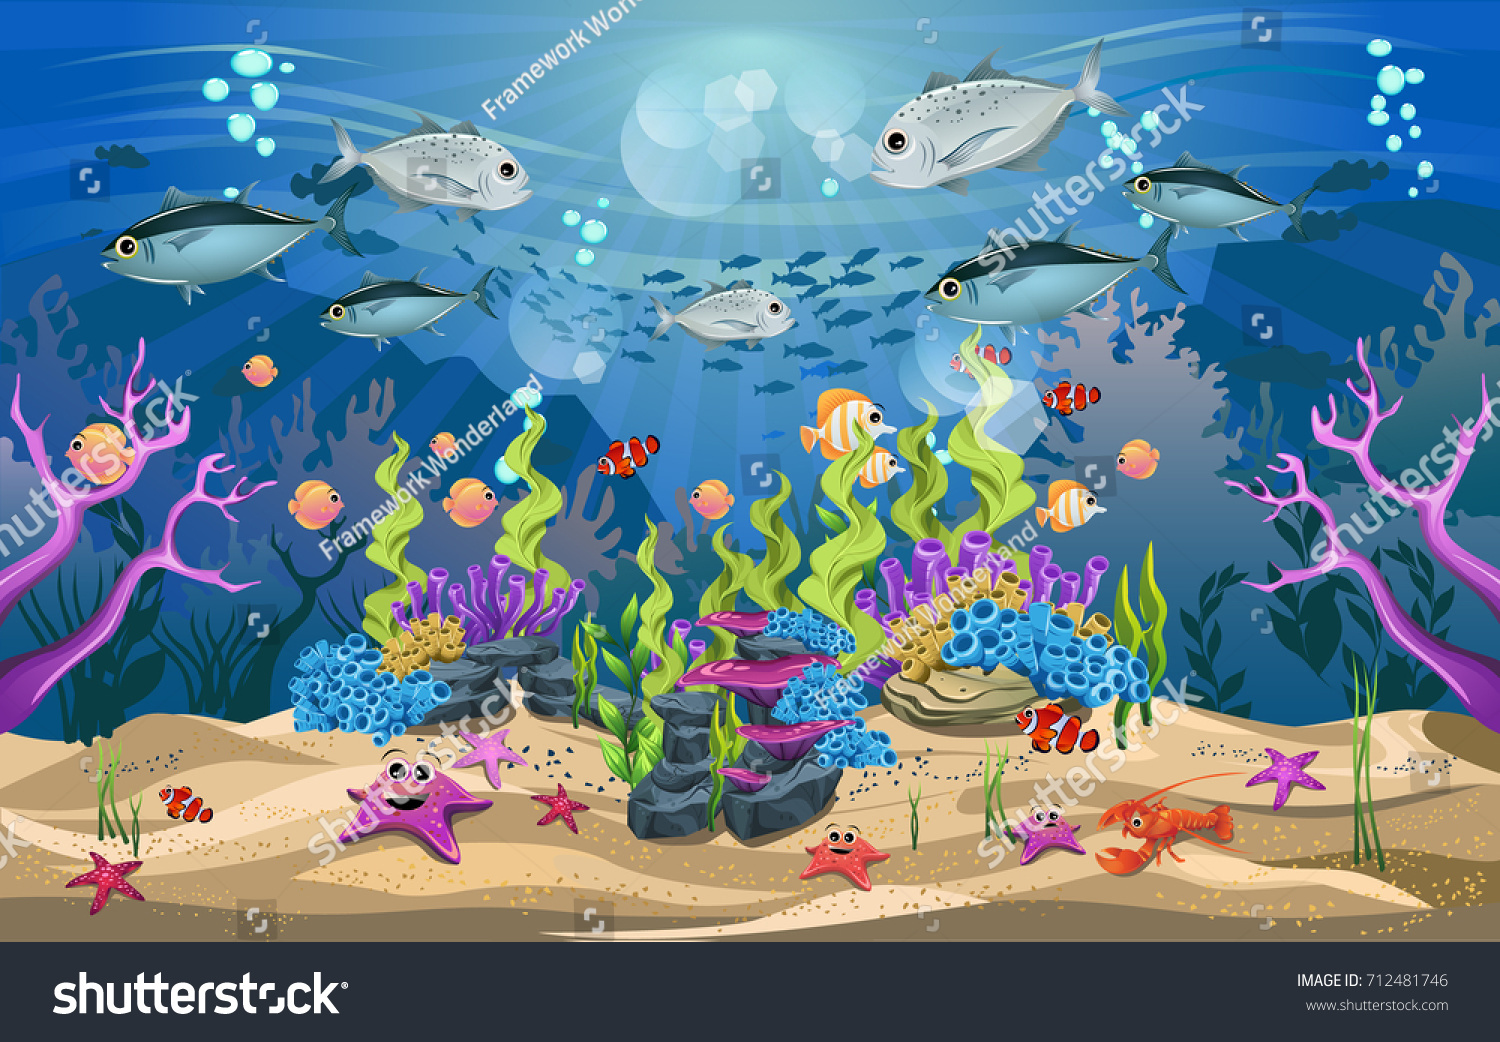 life beautiful ecosystems ocean beauty underwater stock vector